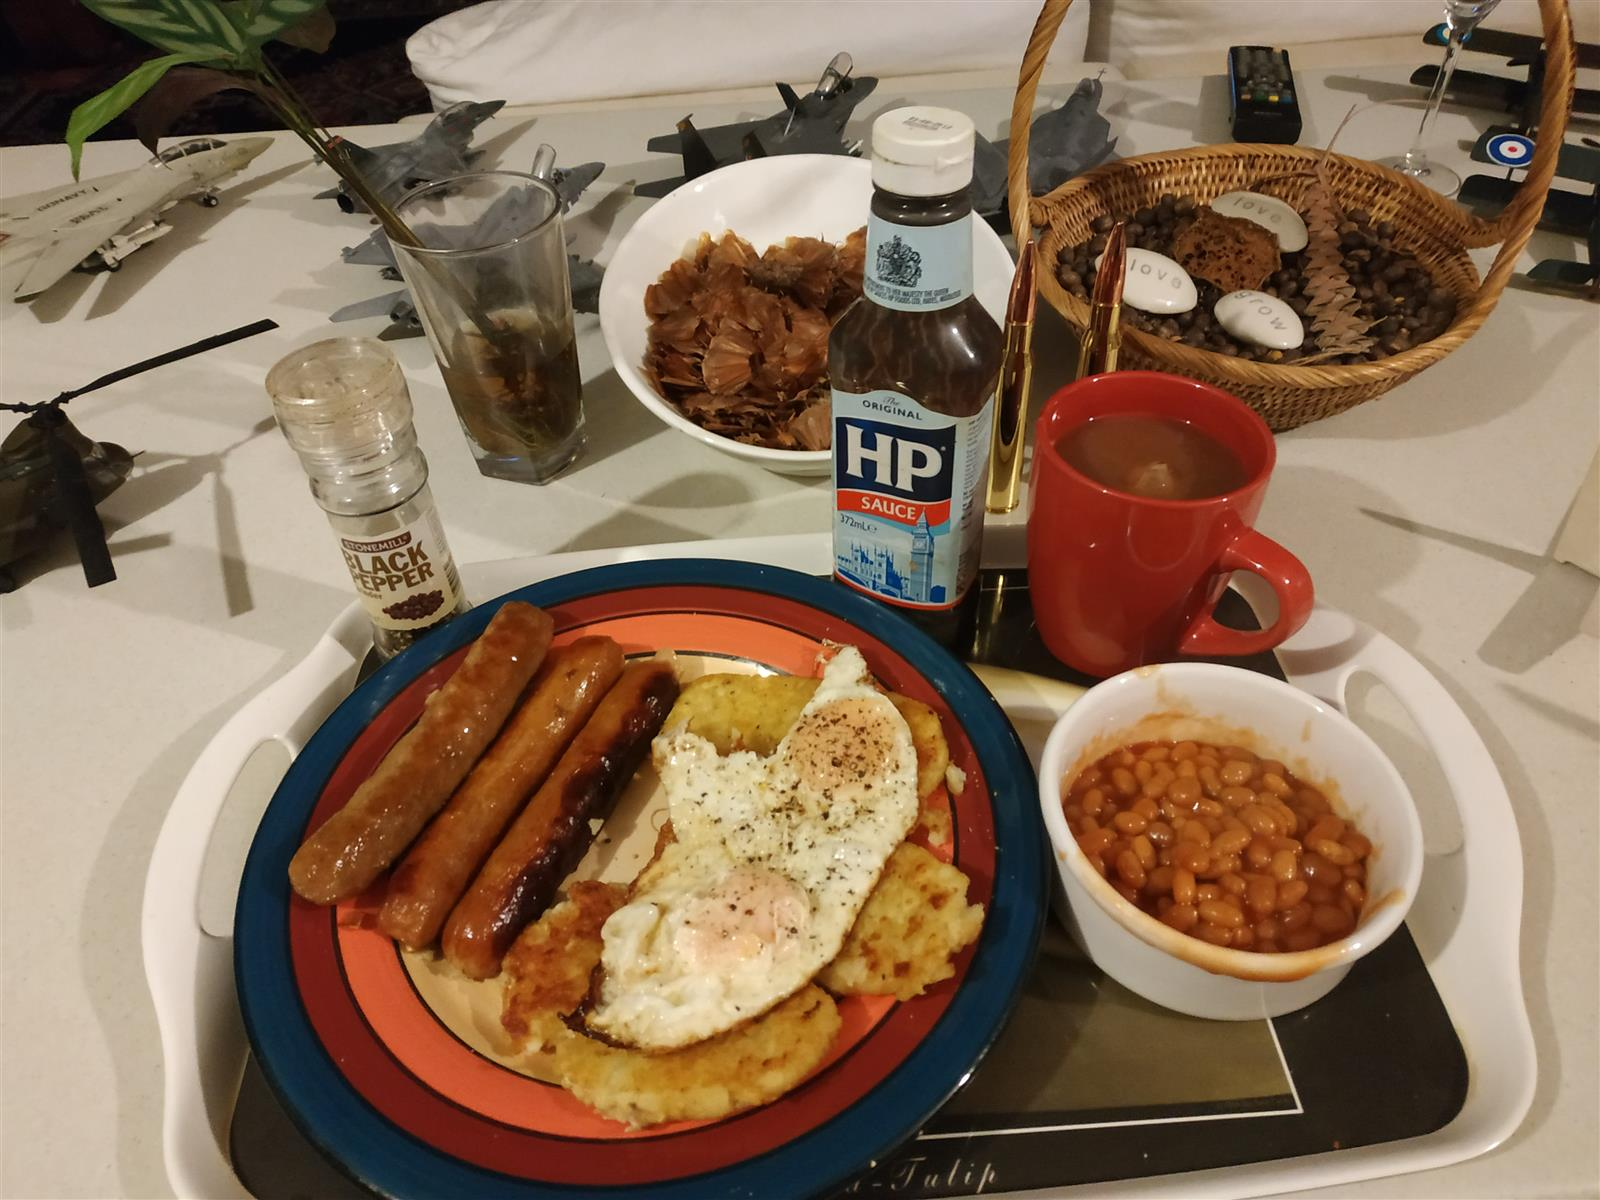 The Best Breakfast in the World Step by Step.: the Full English-img_20210125_221013-jpg